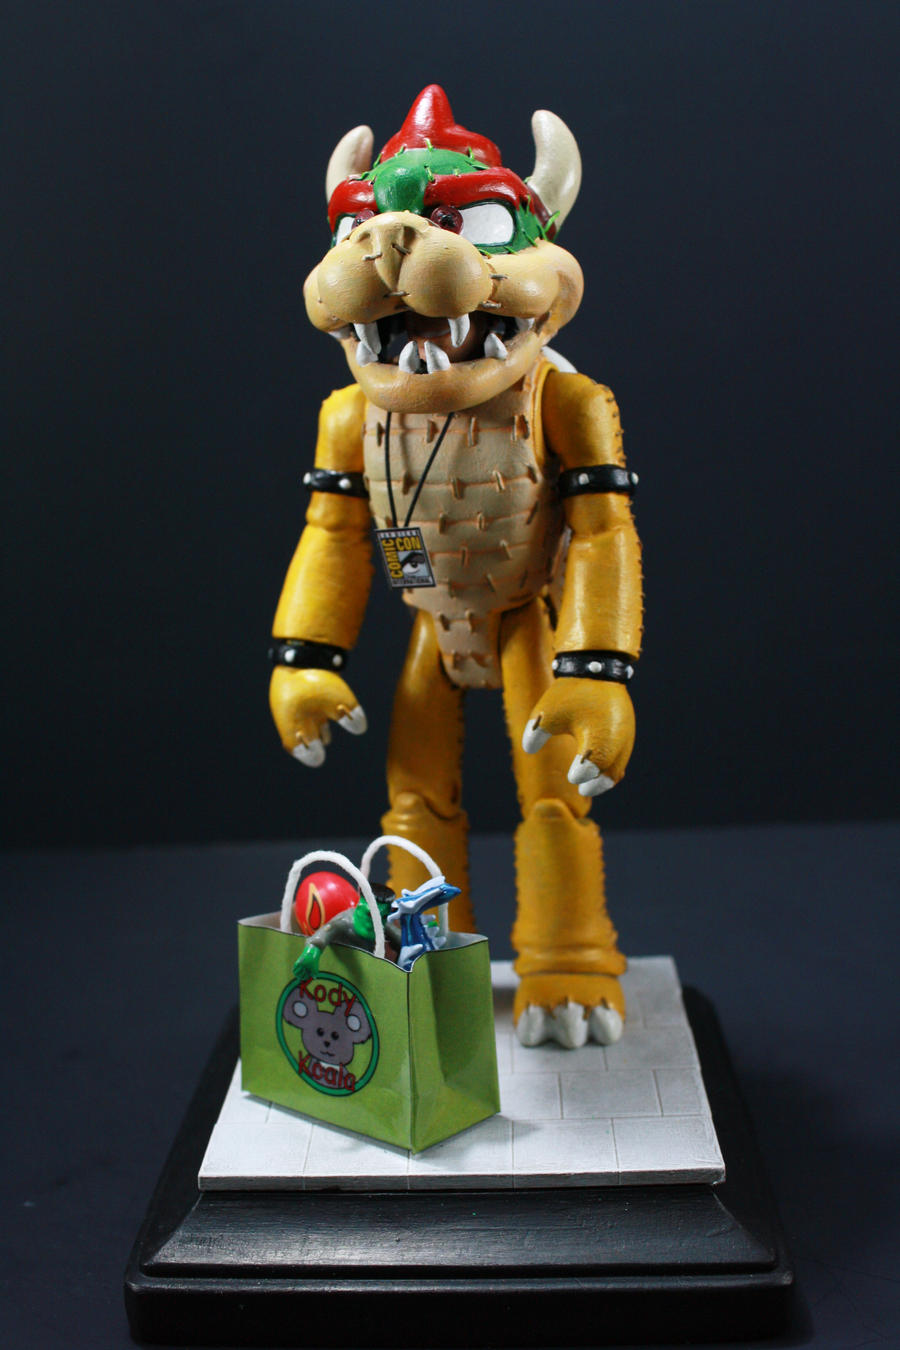 Bowser Cosplay Figure by kodykoala